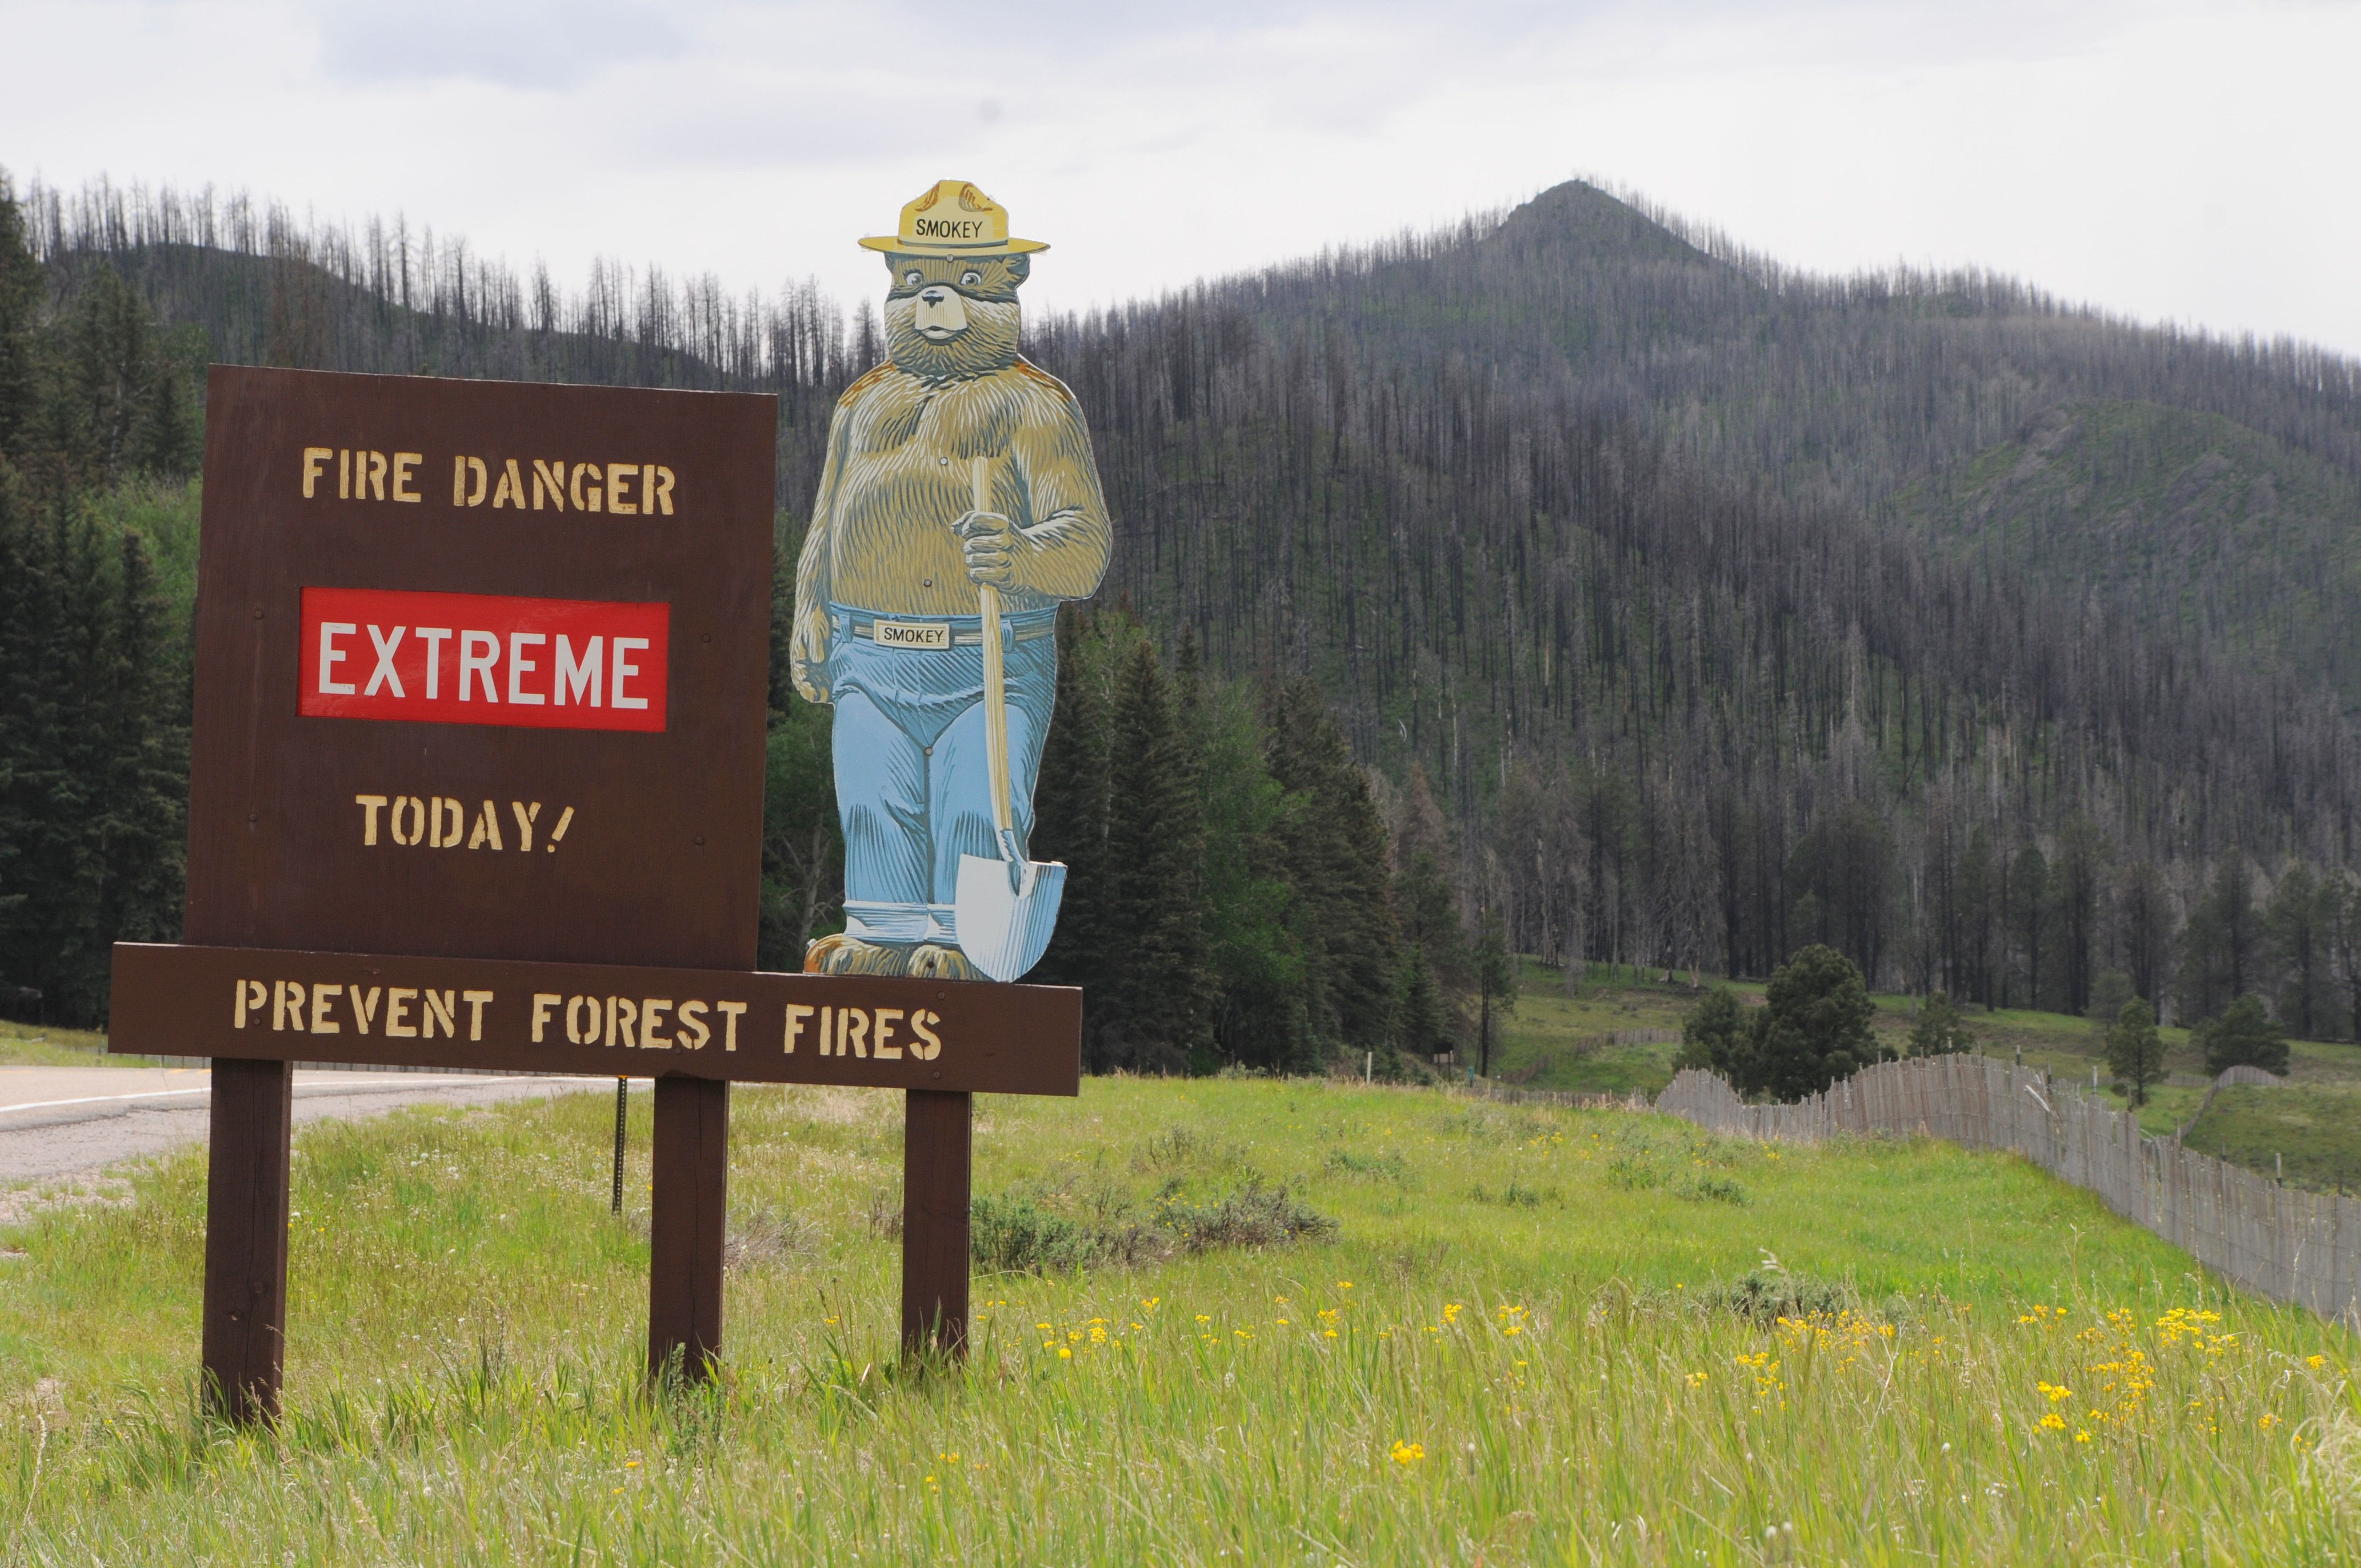 A sign indicates fire danger in New Mexico's Valles Caldera National Park in this undated file photo.